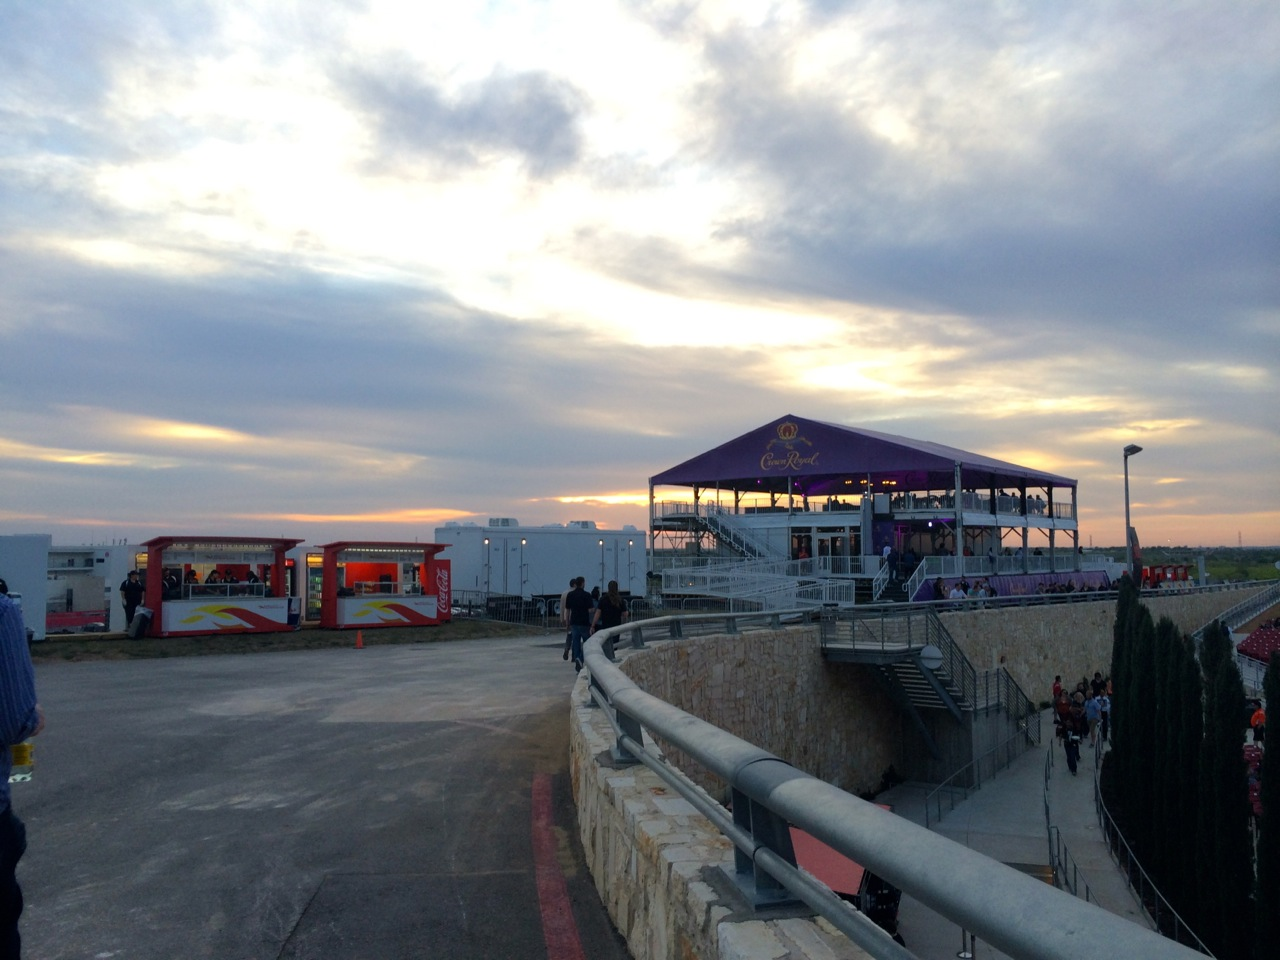 Crown Royal COTA Tent ... & Crown Royal Tasting at Circuit of the Americas - A Time To Kale